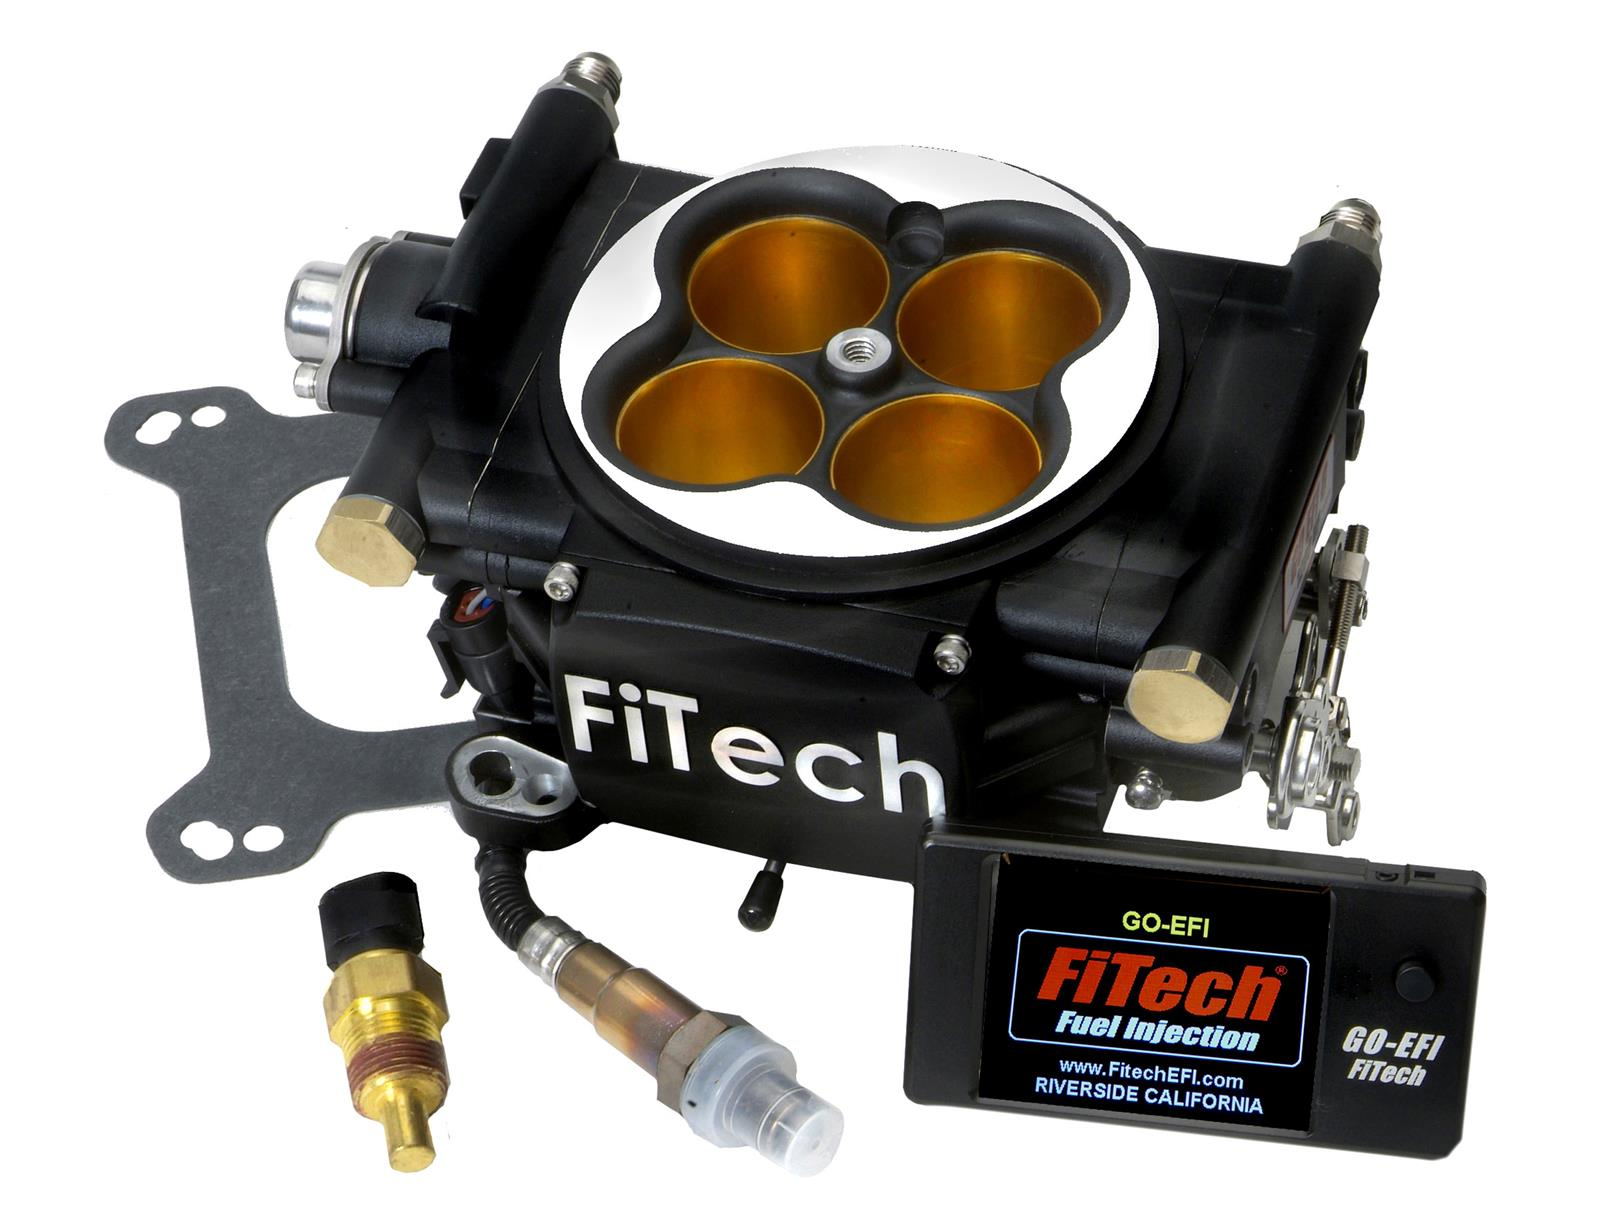 fitech go efi 8 power adder plus 1200hp fuel injection systems 30012 free shipping on orders. Black Bedroom Furniture Sets. Home Design Ideas